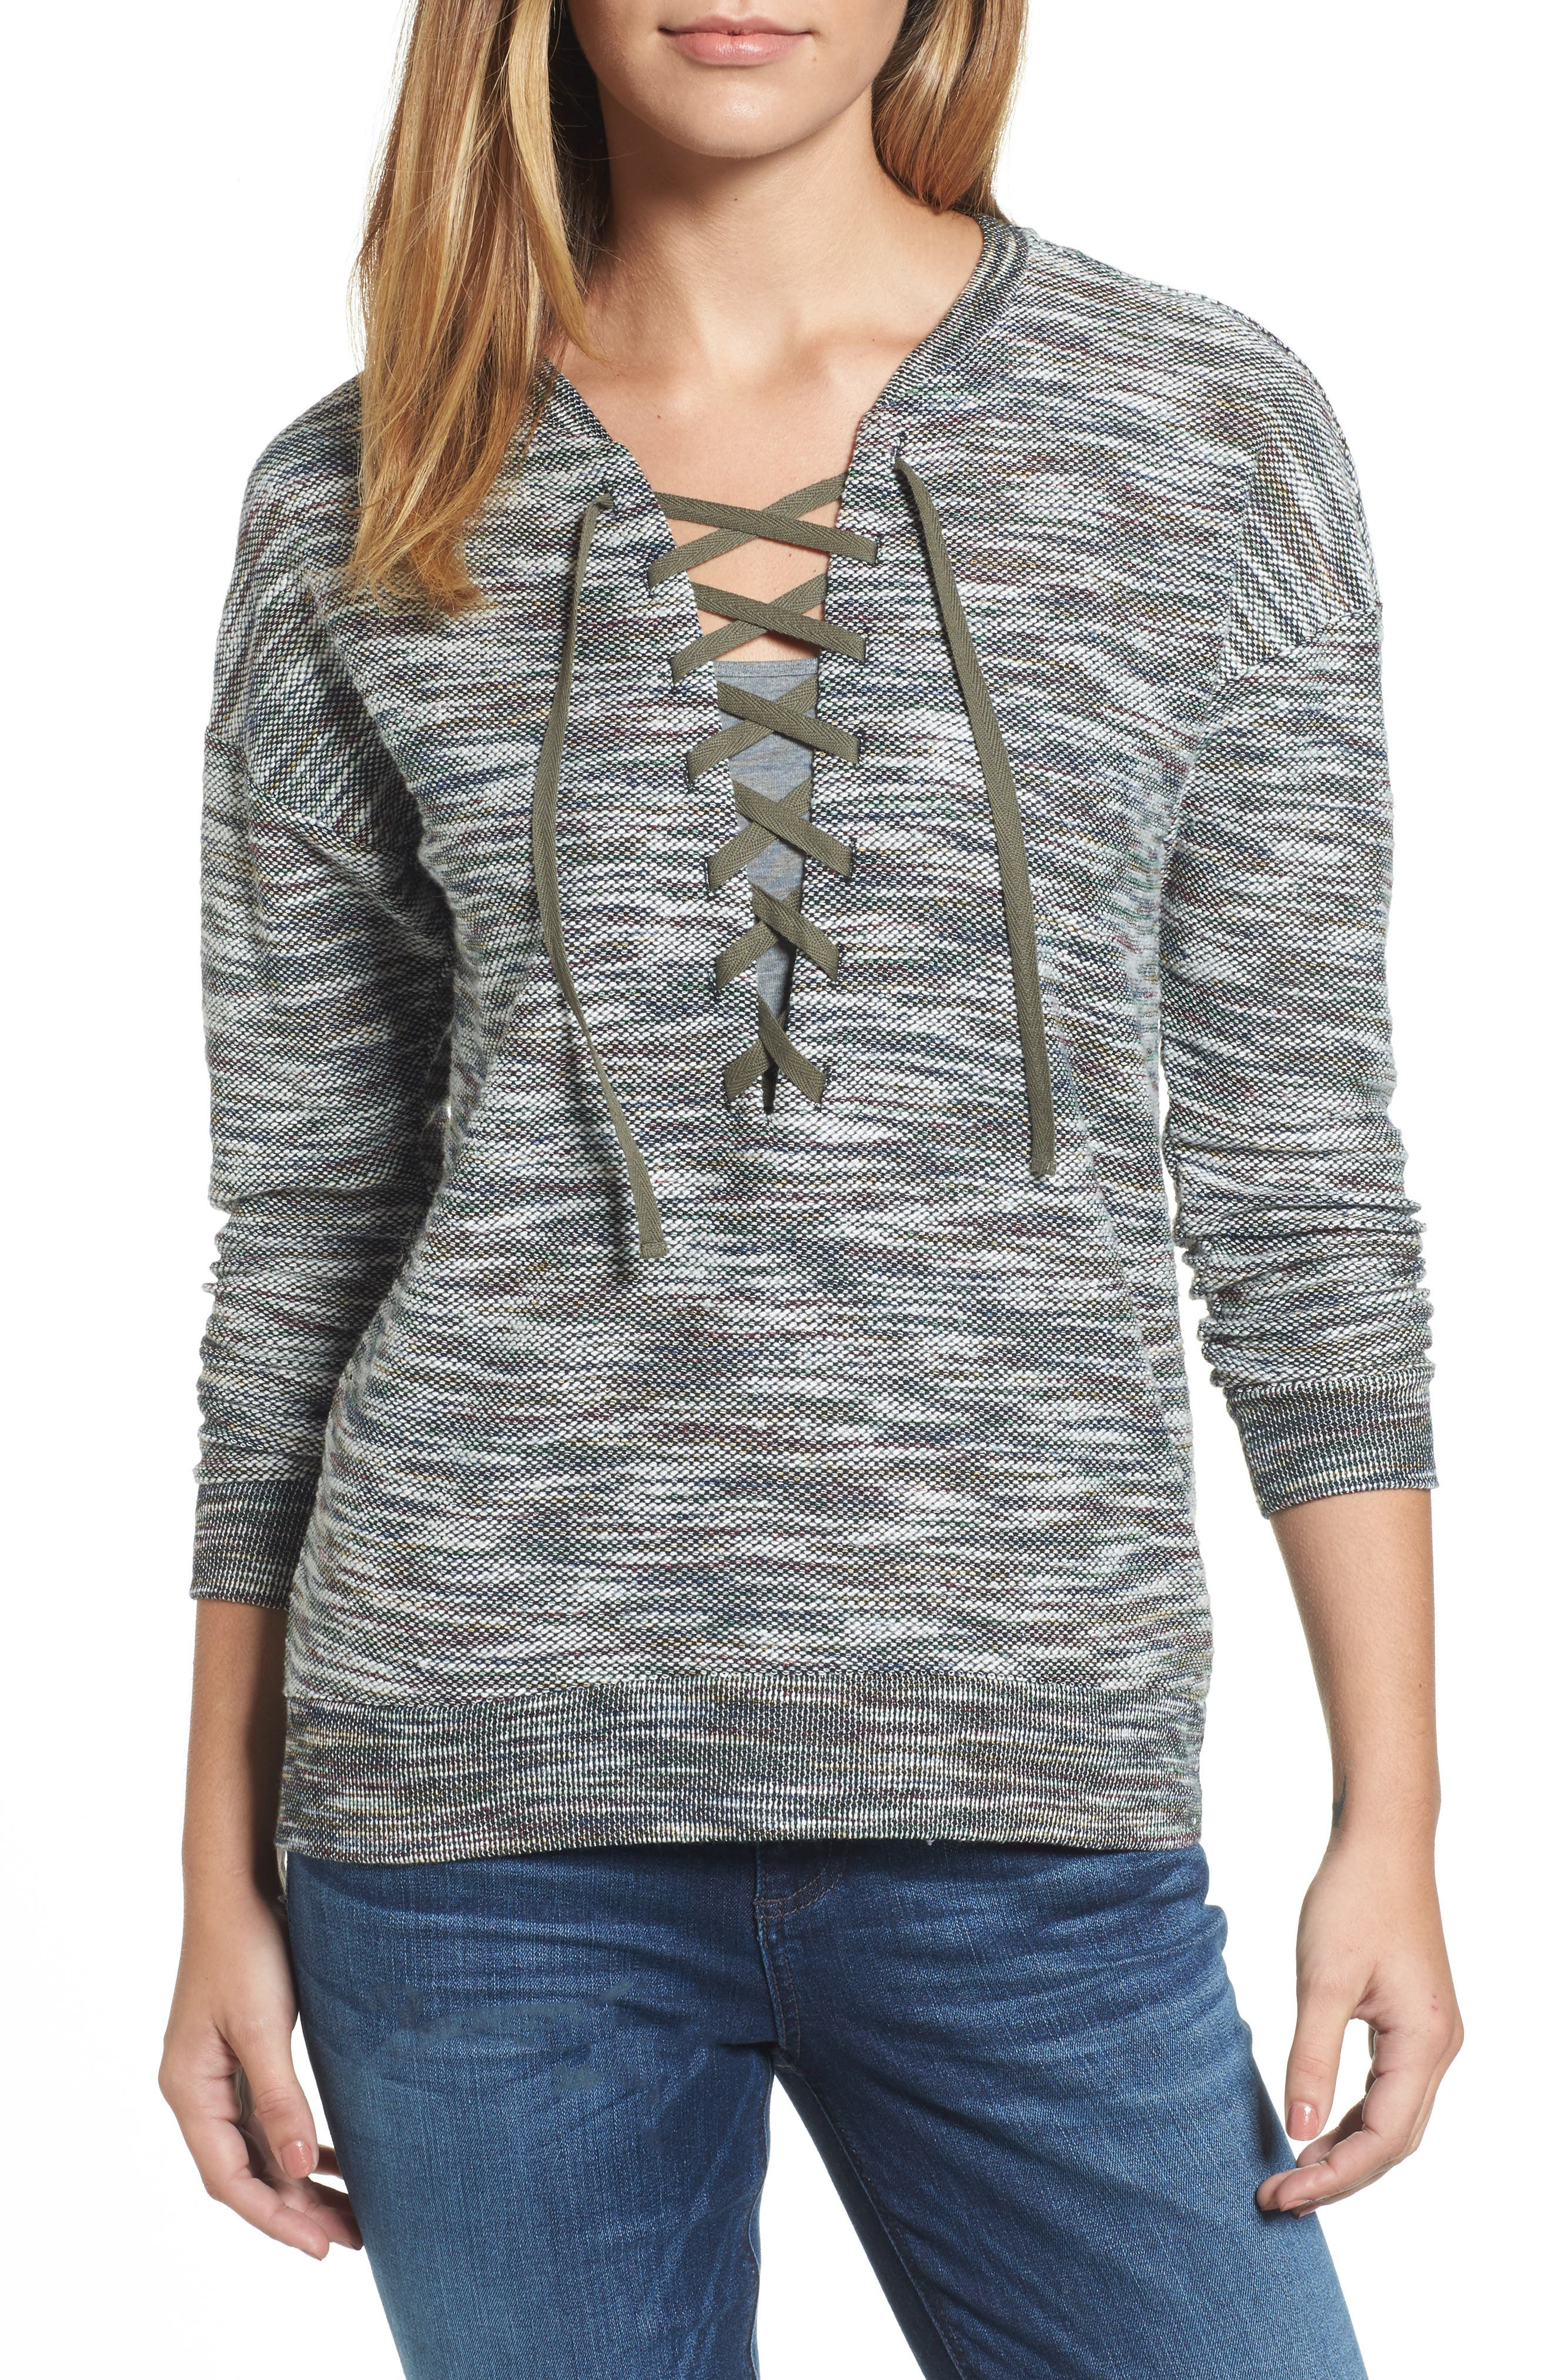 KUT from the Kloth Everly Lace-Up Sweater